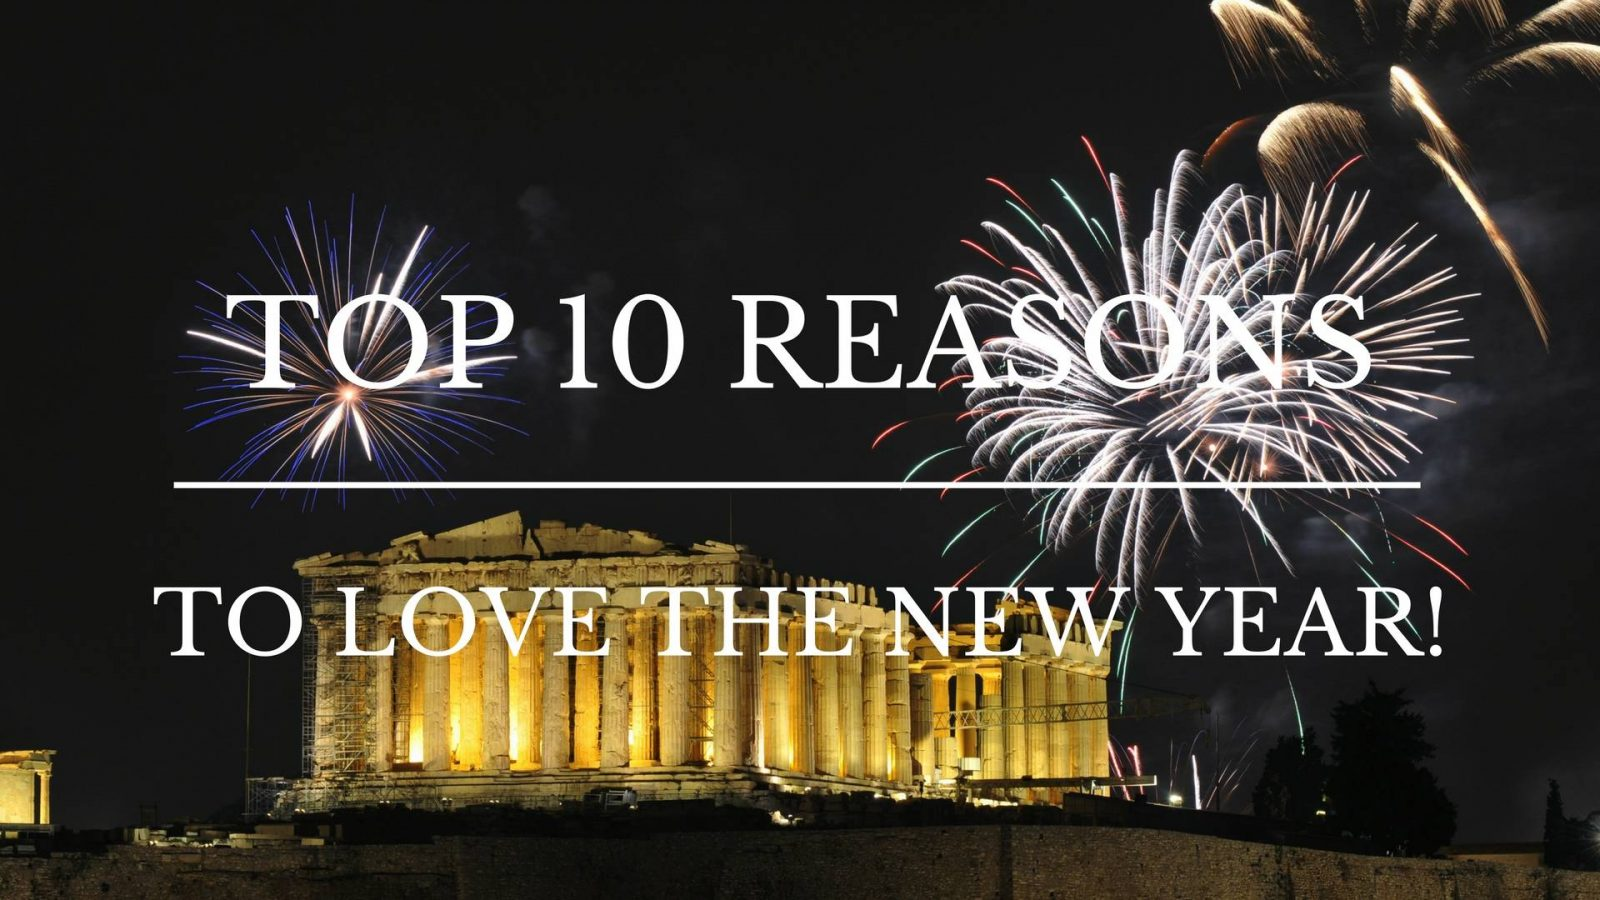 Top 10 Reasons to LOVE the NEW YEAR!